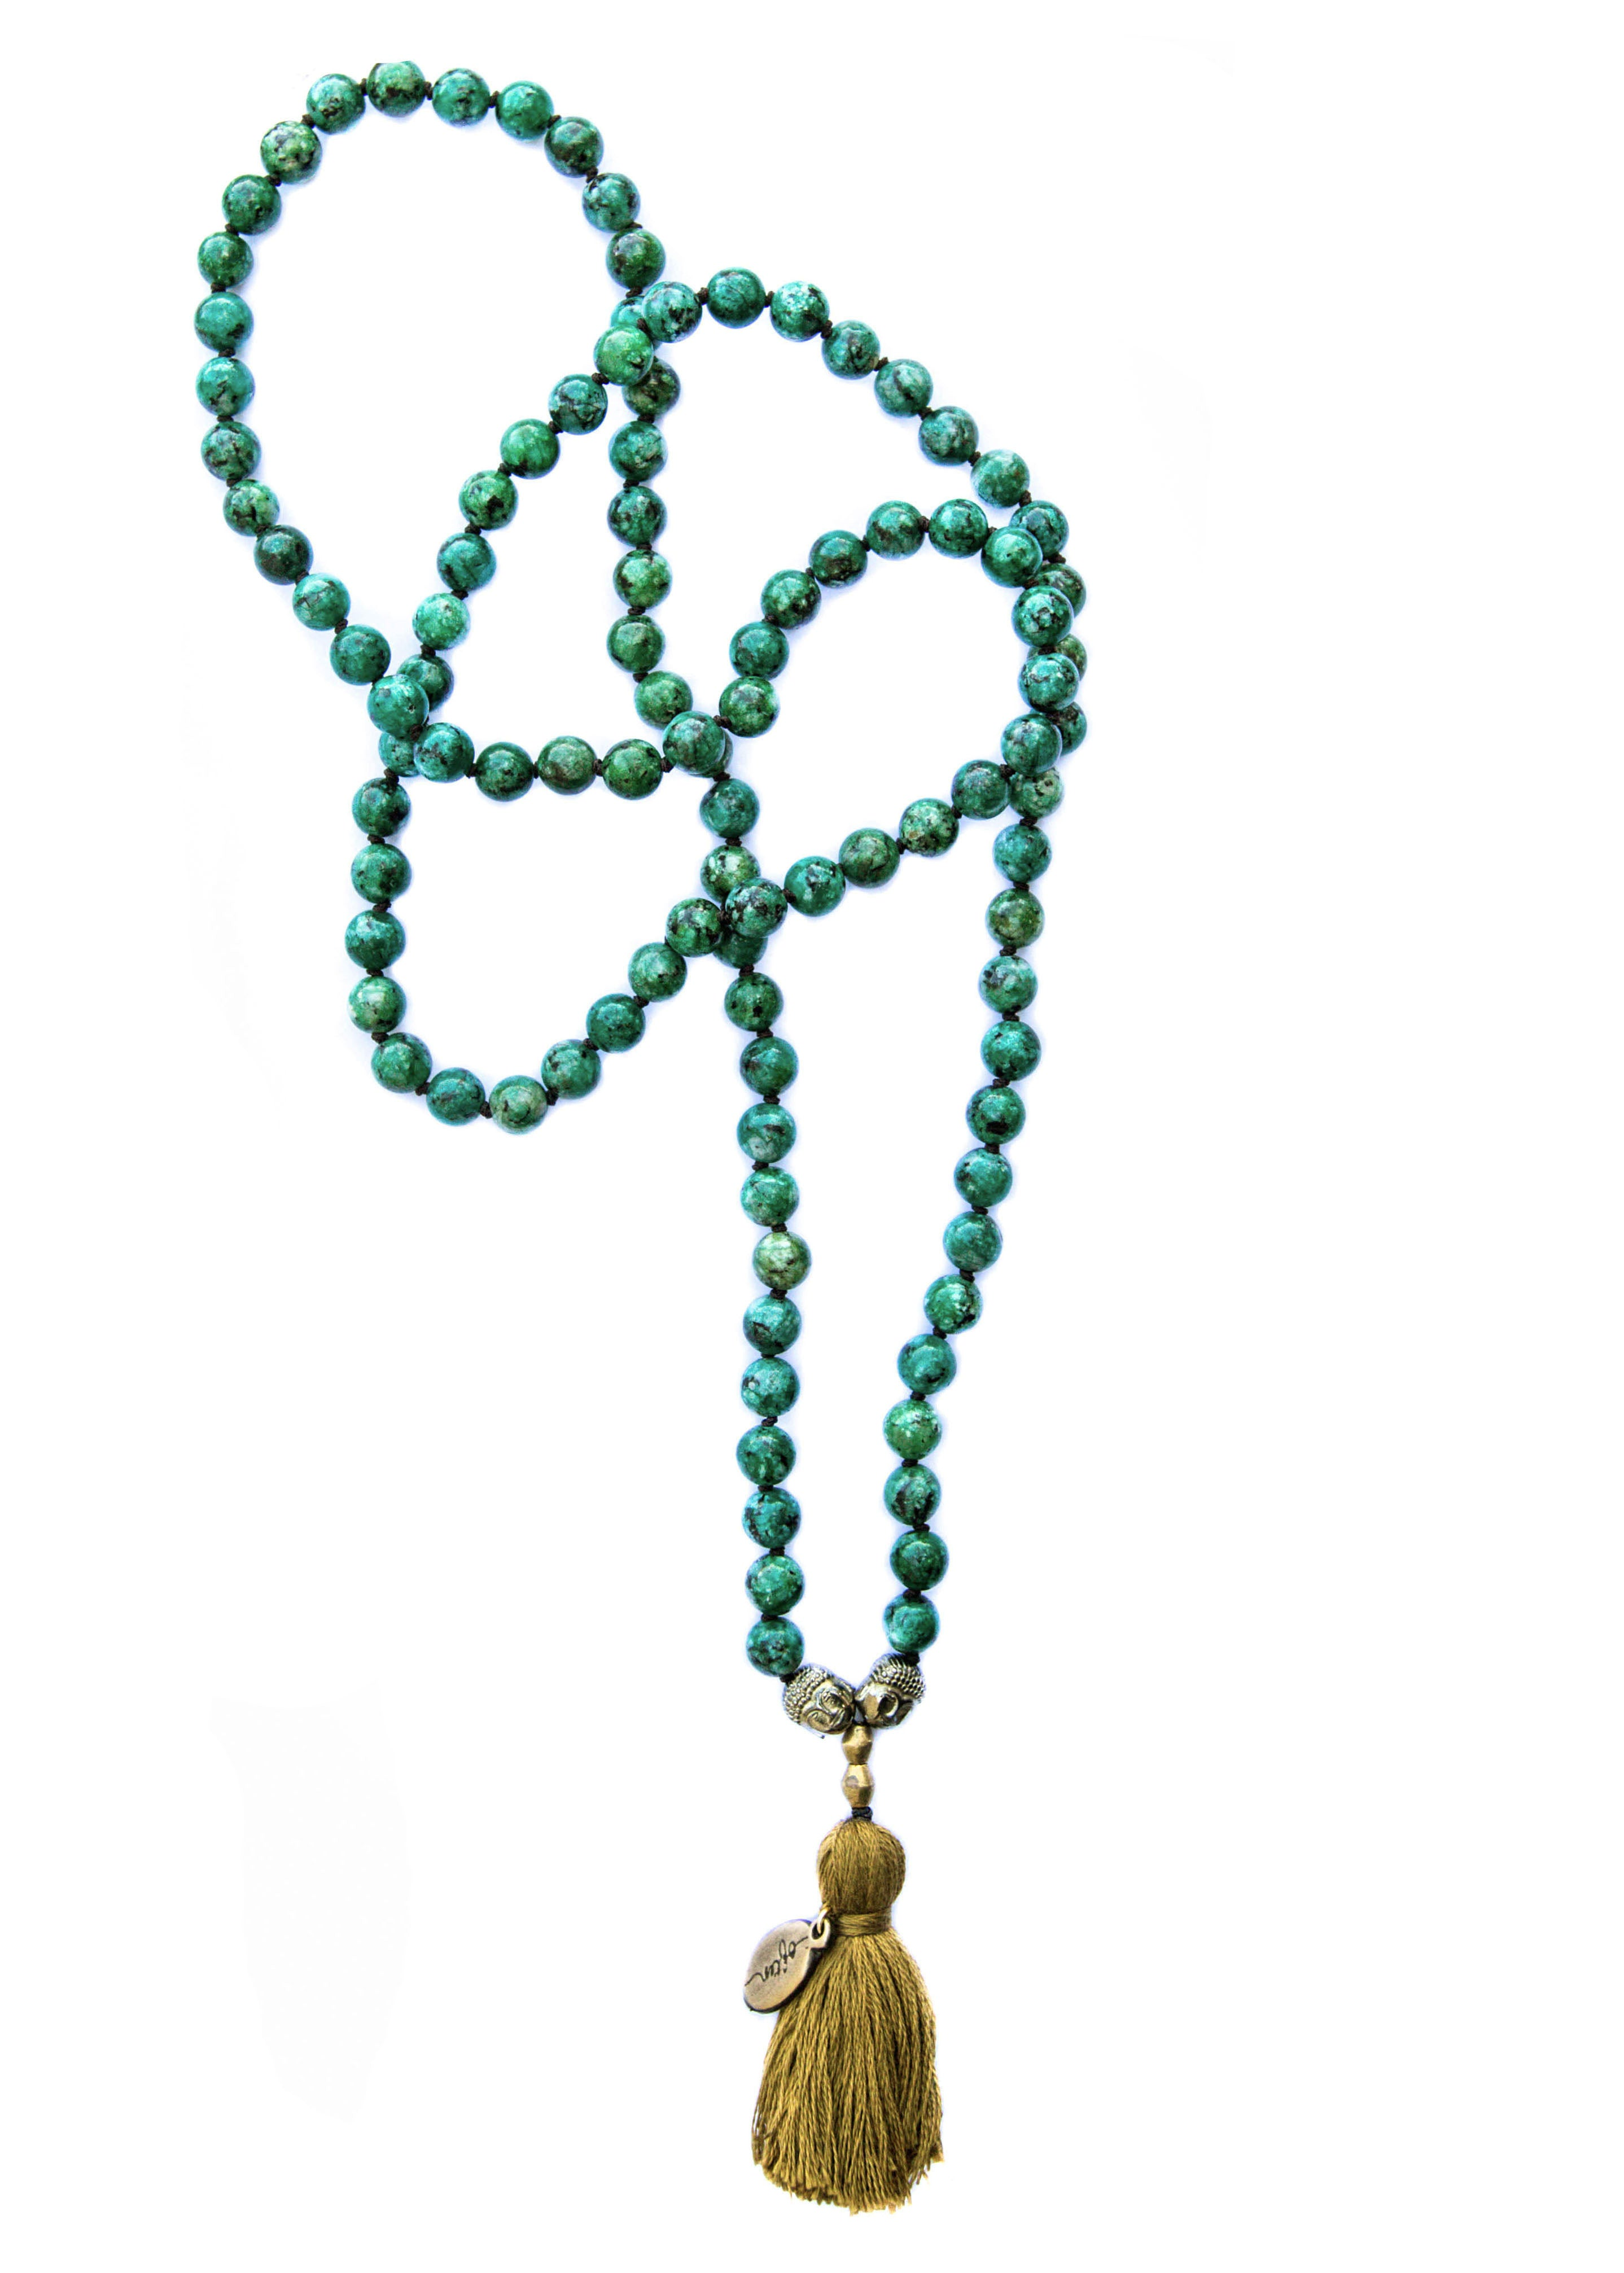 Mala - Blue African Turquoise